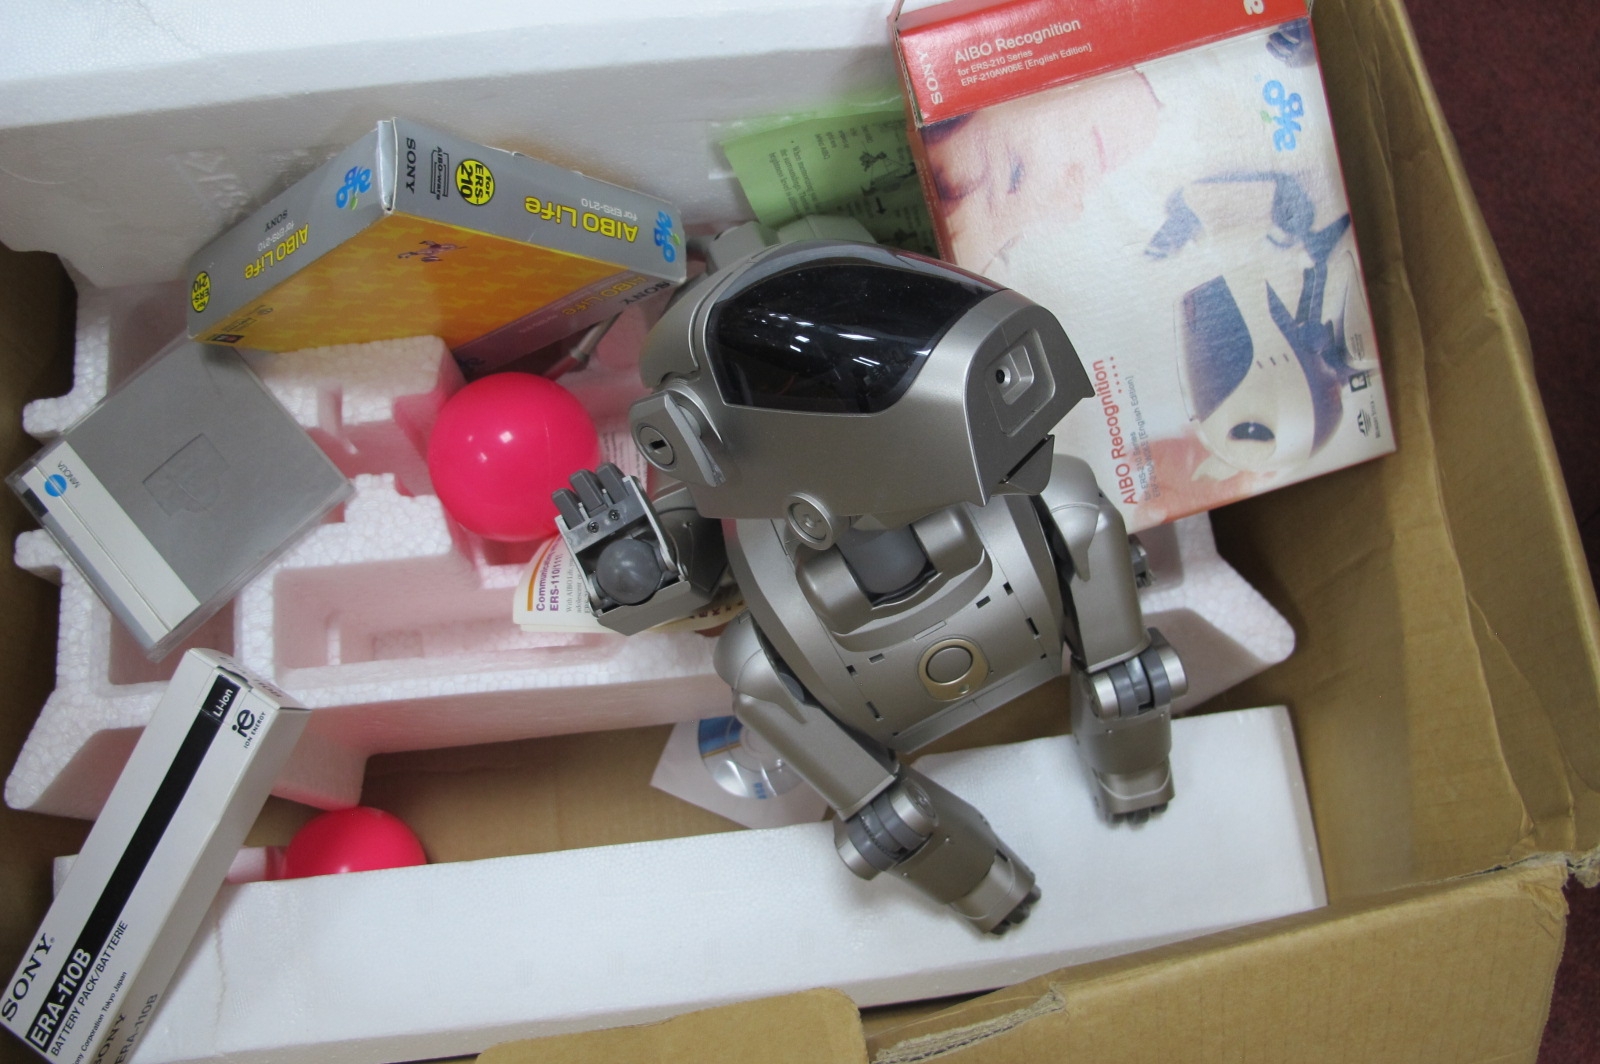 SonyAibo Life ER9 - 110/111 Entertainment Robot, in grey with beagle like appearance circa 1999,